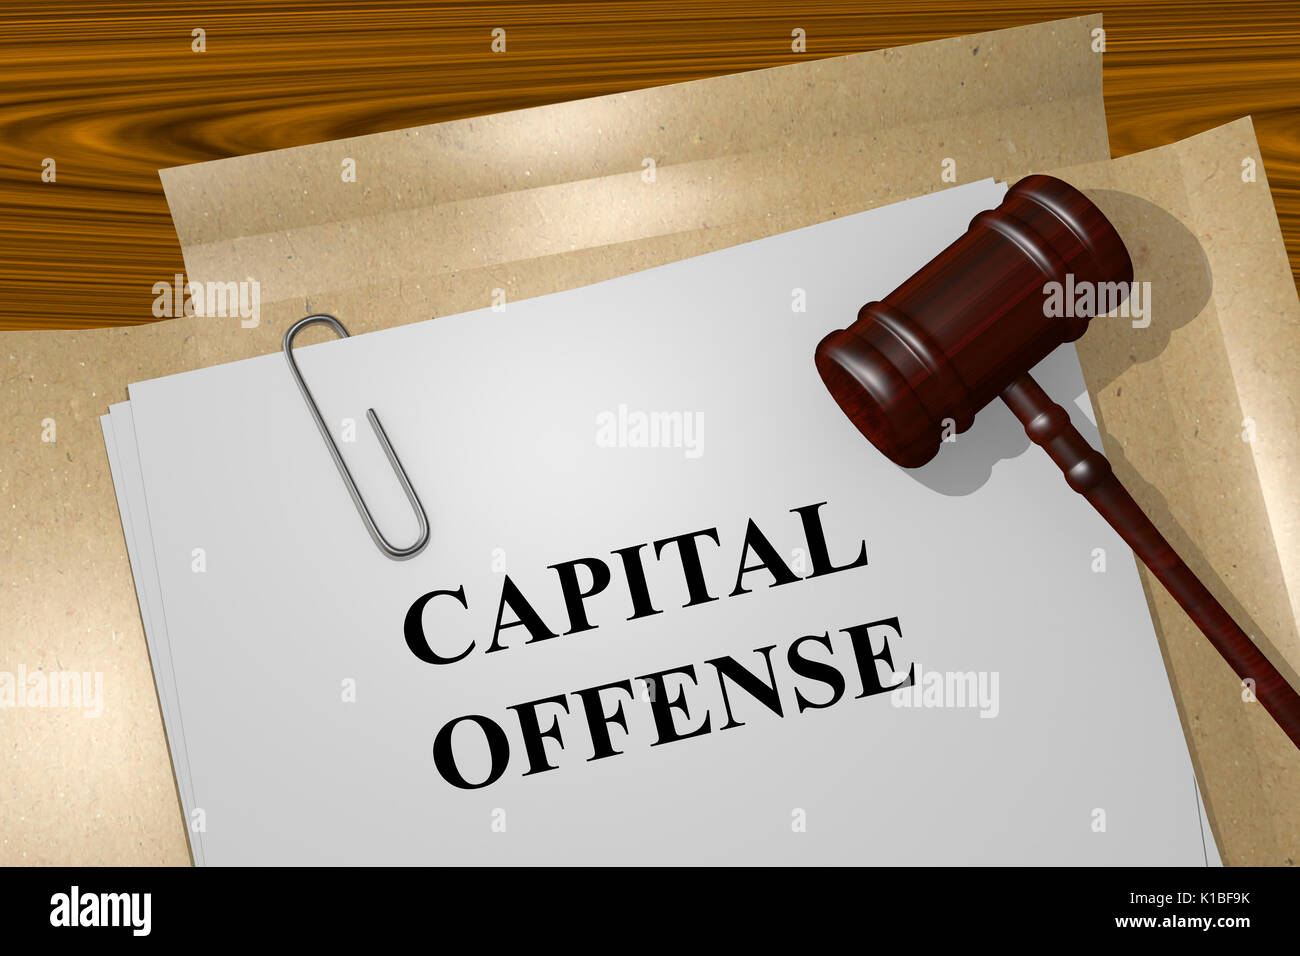 Capital Offense Title On Legal Documents - Stock Image